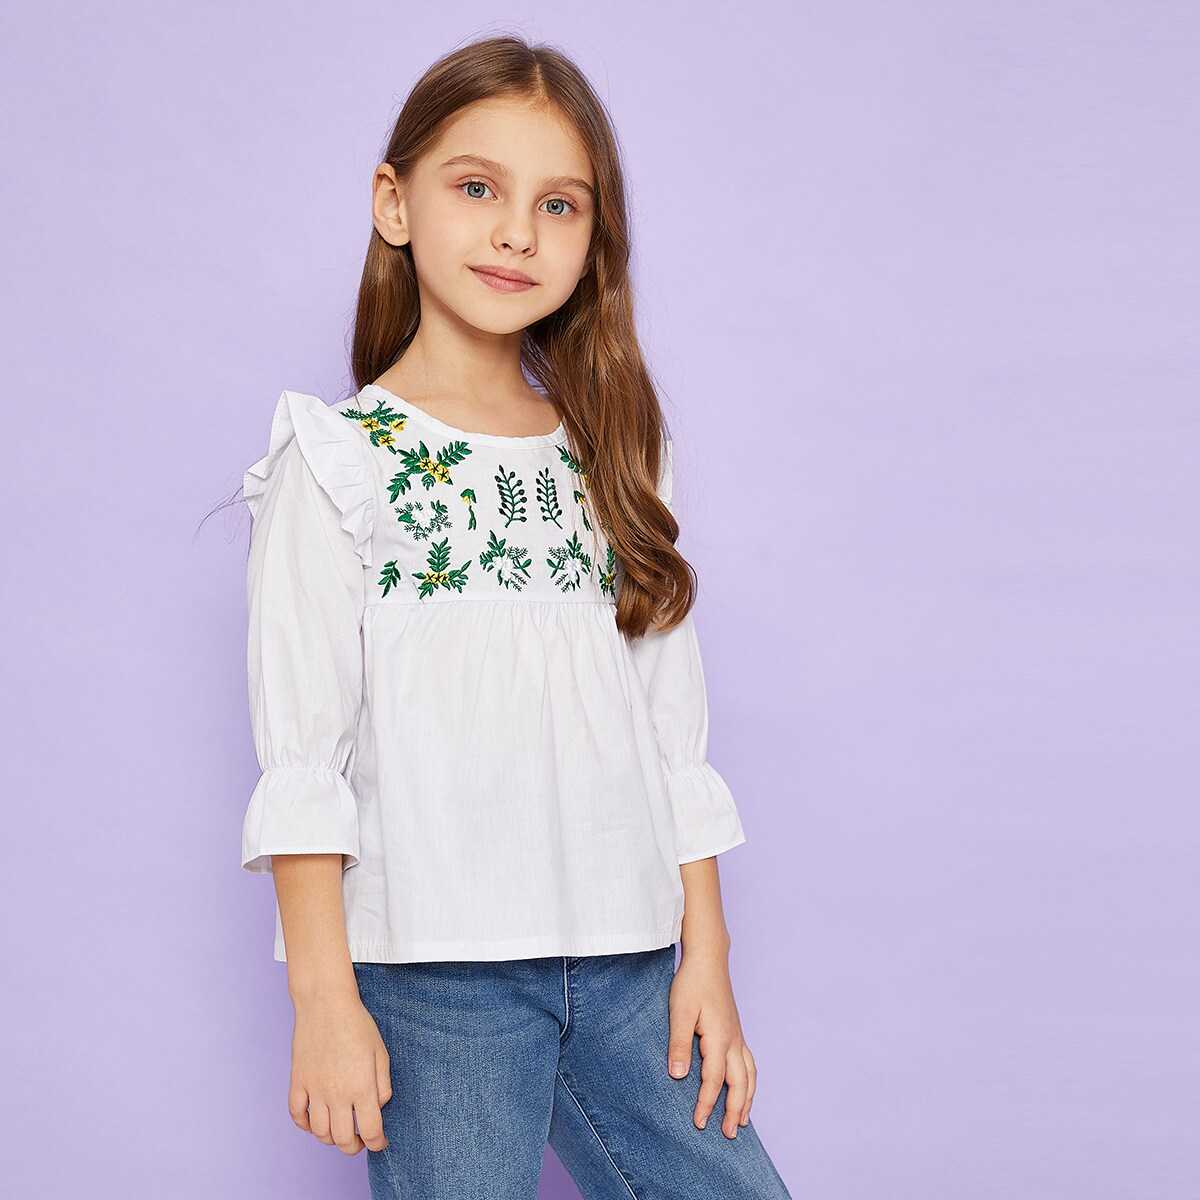 Toddler Girls Plants Embroidery Ruffle Trim Blouse - Shein - GOOFASH